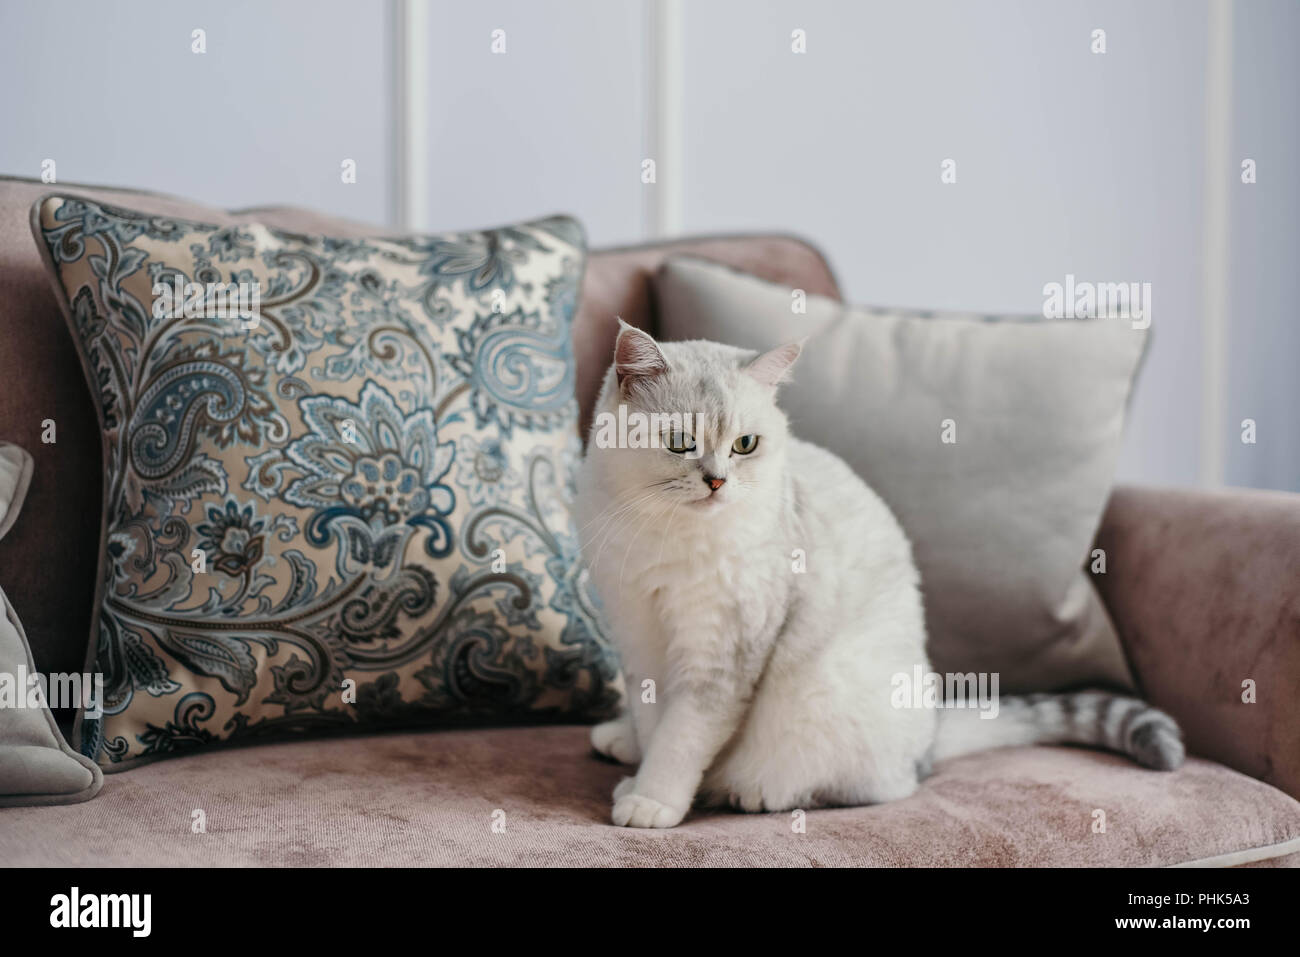 beautiful white grey cat on cauch in classic french home decor near rh alamy com French Country Cottage Decor French Country Cottage Decor